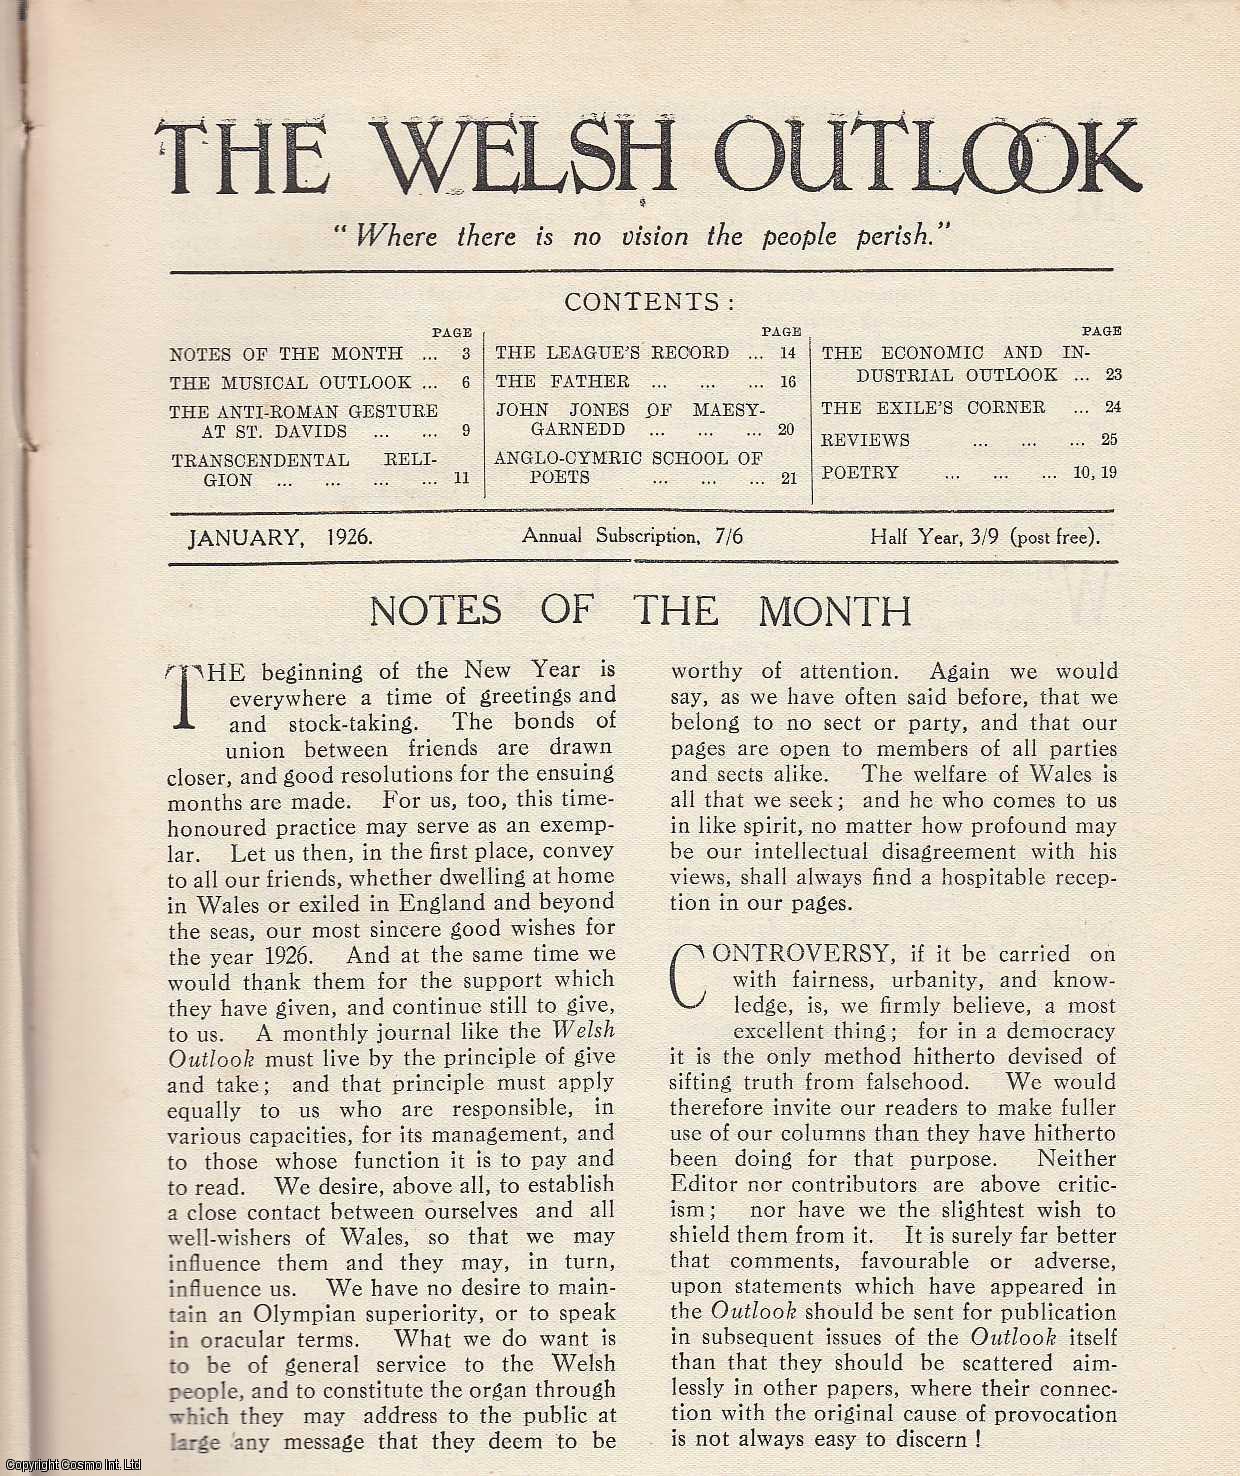 The Welsh Outlook. A Monthly Journal of National Social Progress. January, 1926. Contains; The Musical Outlook by Sir Walford Davies; The Anti-Roman Gesture at St. Davids by Rev. A.W. Wade-Evans; Transcendental Religion by Professor D. Miall Edwards; The League's Record by A.O. Roberts; The Father by Ap Tango; John Jones of Maesygarness by Vyrnwy Lewis; The Anglo-Cymric School of Poets by Lewis Davies; The Economic & Industrial Outlook by W. Tudor Davies; The Exile's Corner: The Welshman in Rome by D. Crowley., Thomas Jones (Editor)